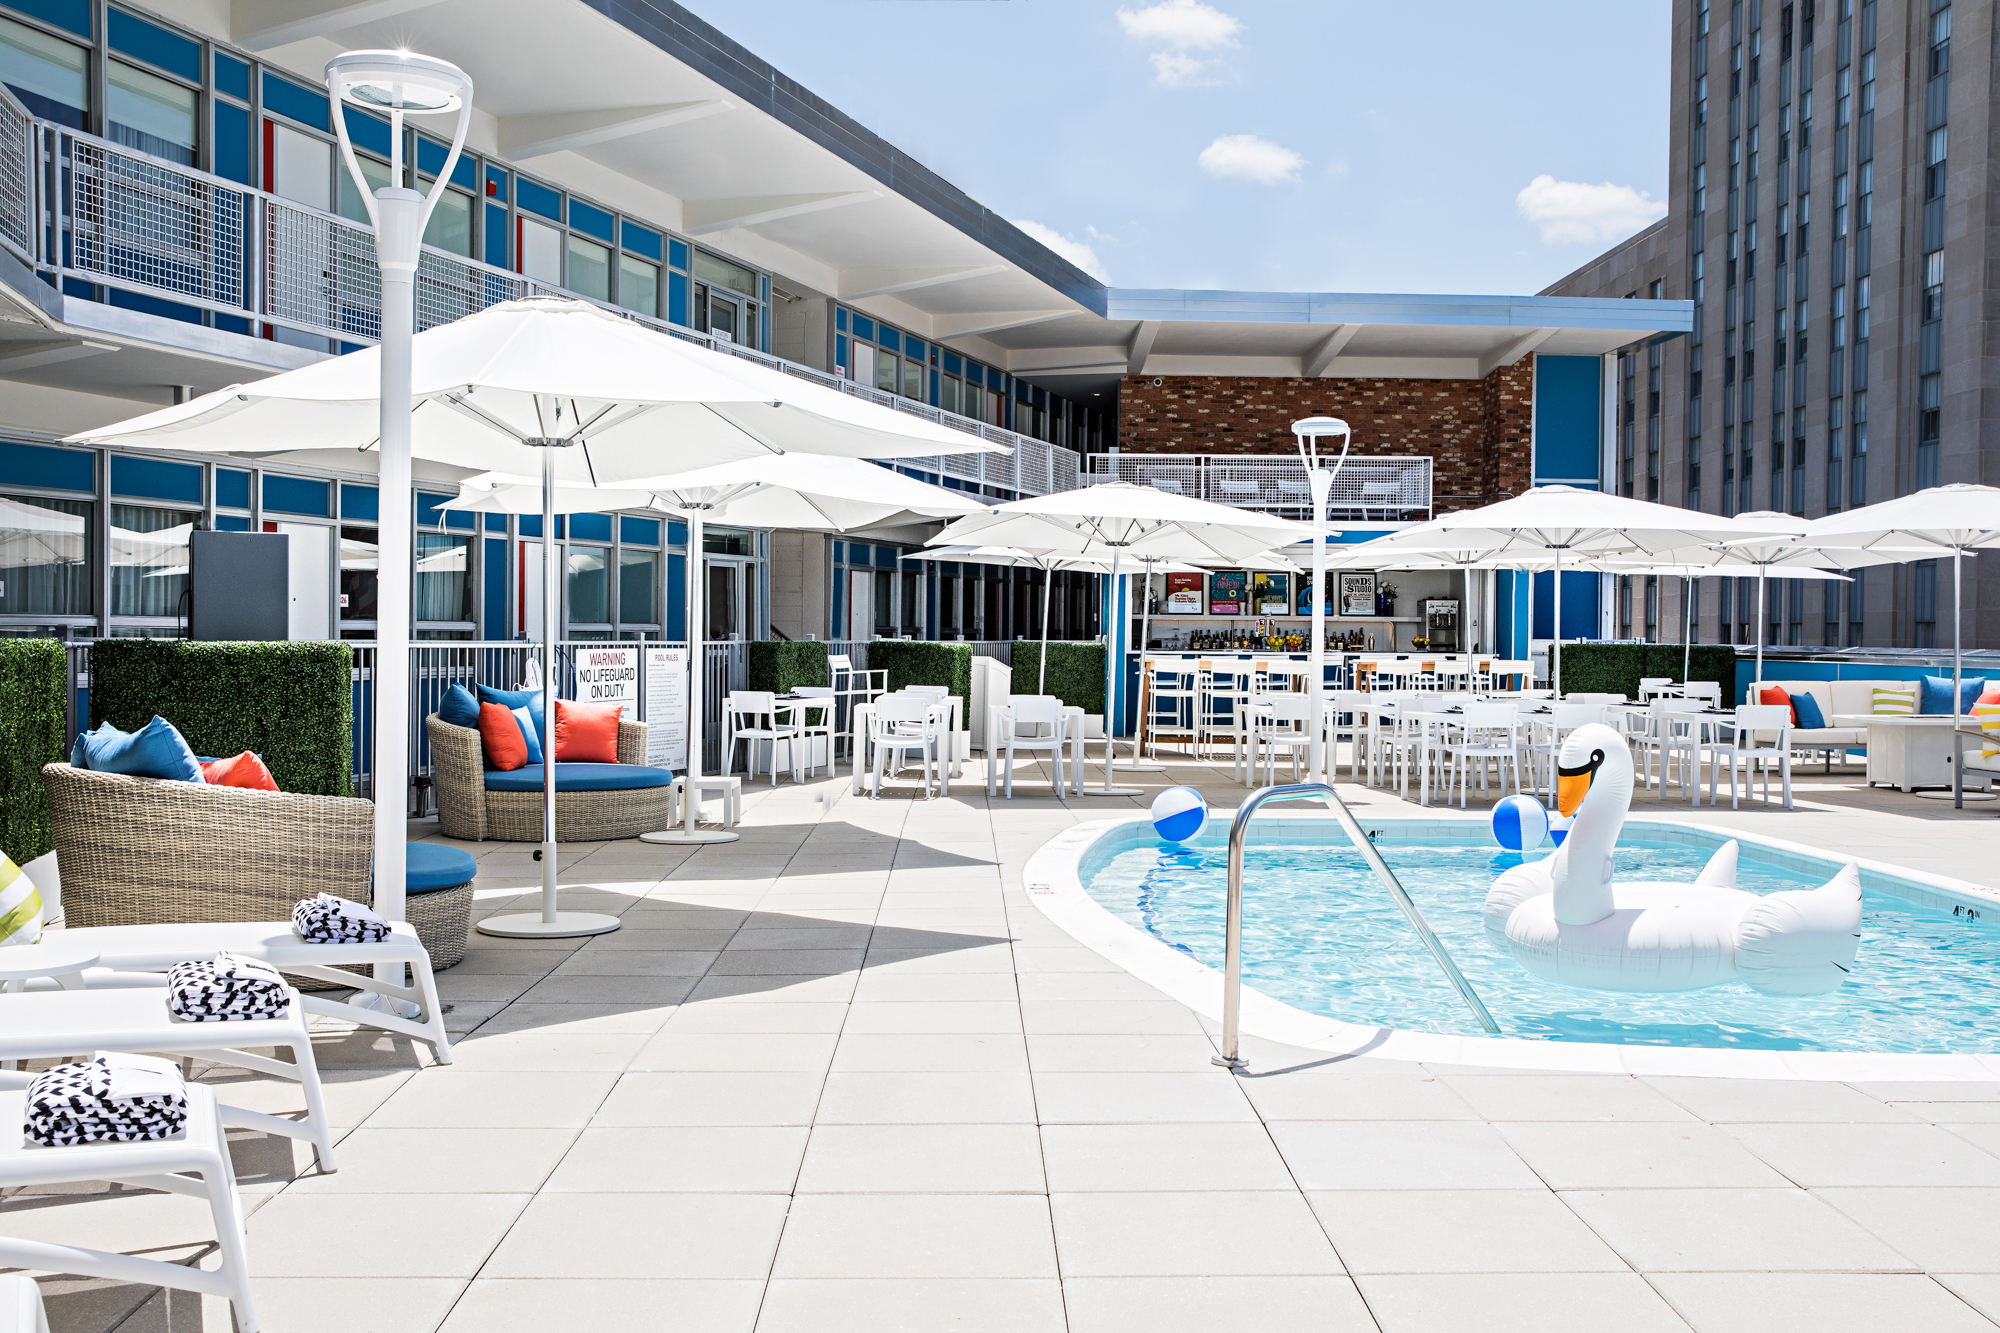 The pool deck is surrounded by a third of the guestrooms.